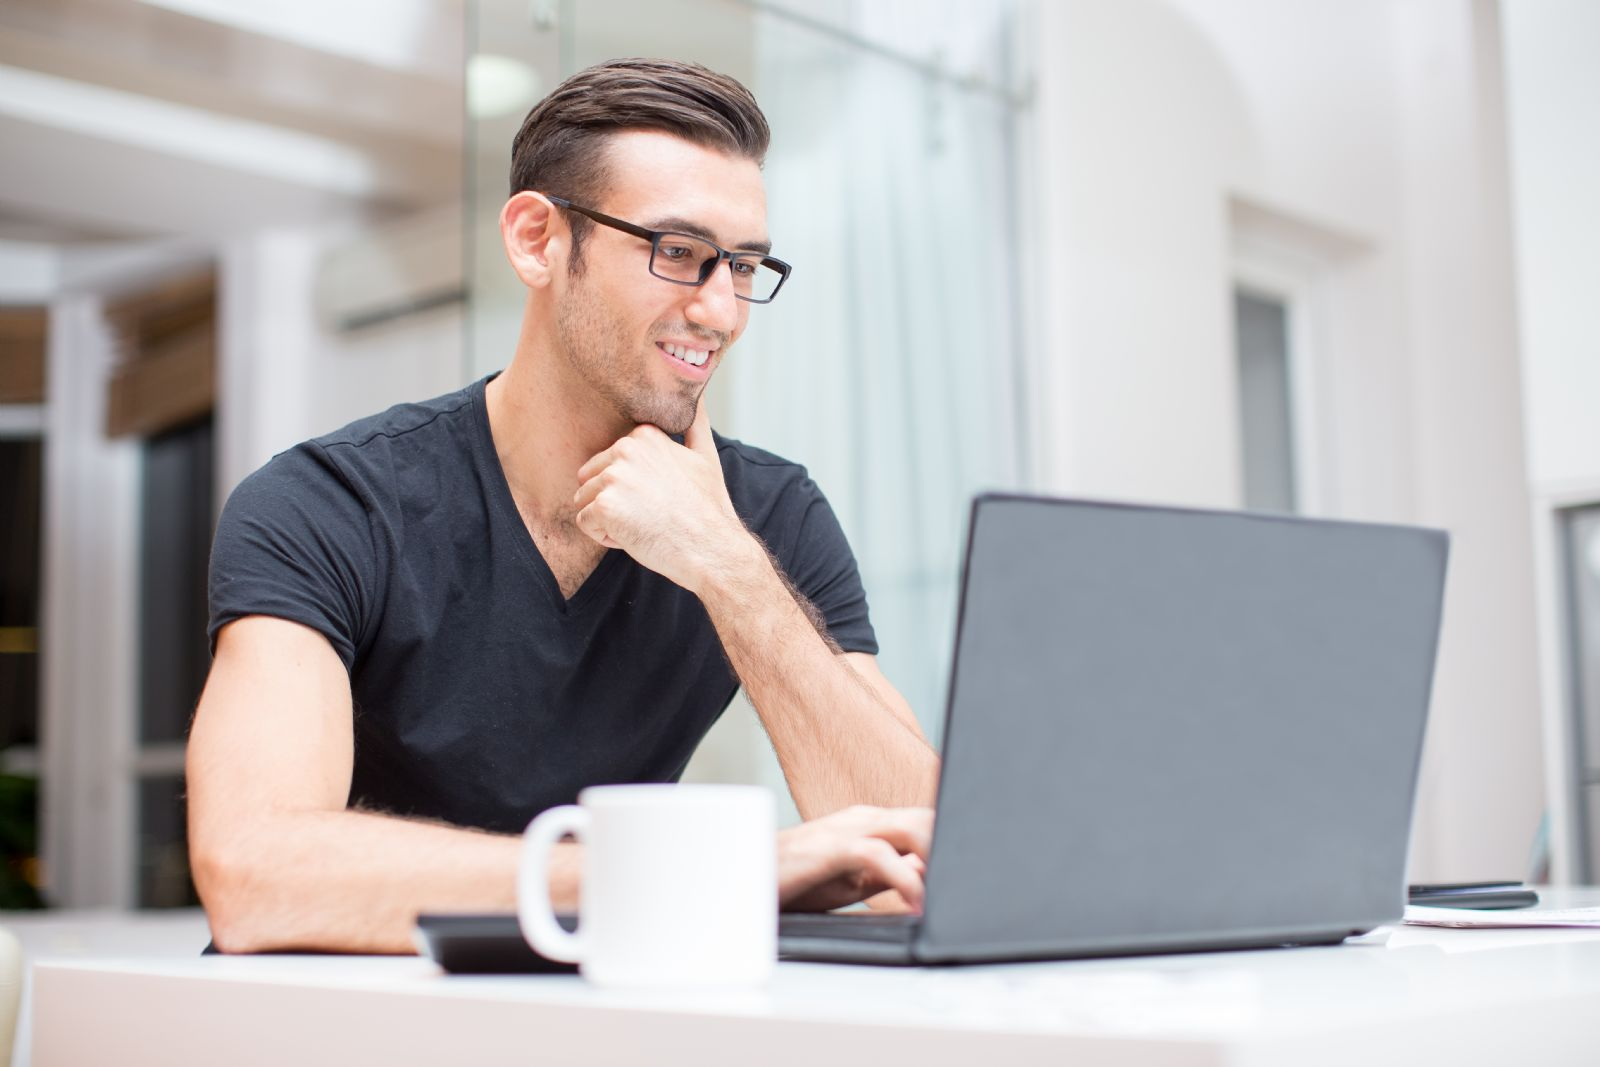 man-laptop-glasses-room-office-young-guy-happy-velox-clearing-pexels